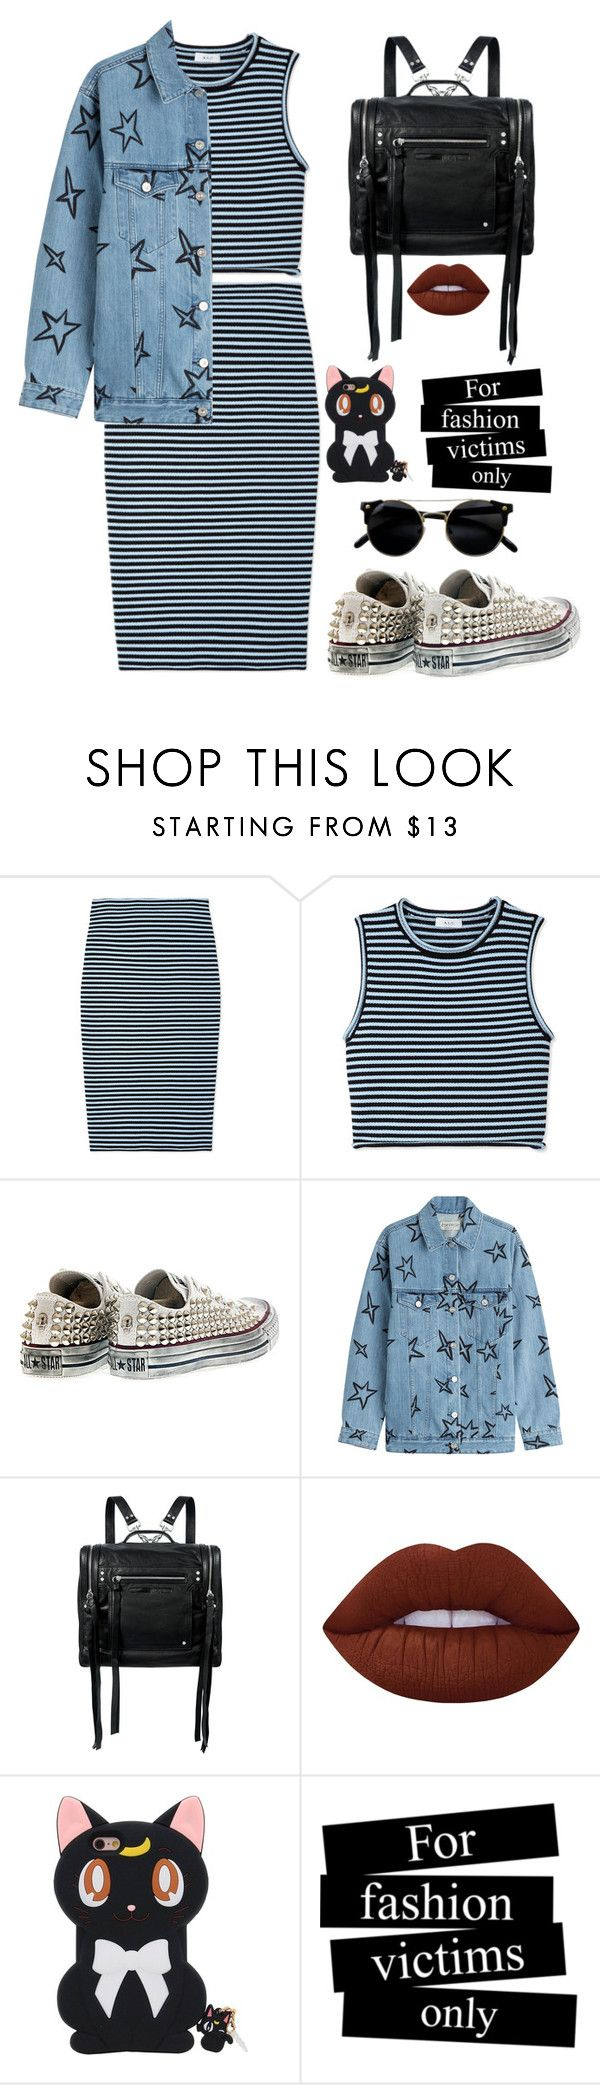 """""""Sin título #1664"""" by mrs-malfoy ❤ liked on Polyvore featuring A.L.C., Converse, Être Cécile, McQ by Alexander McQueen, Lime Crime, converse, alc, McQbyAlexanderMcQueen and etrececile"""